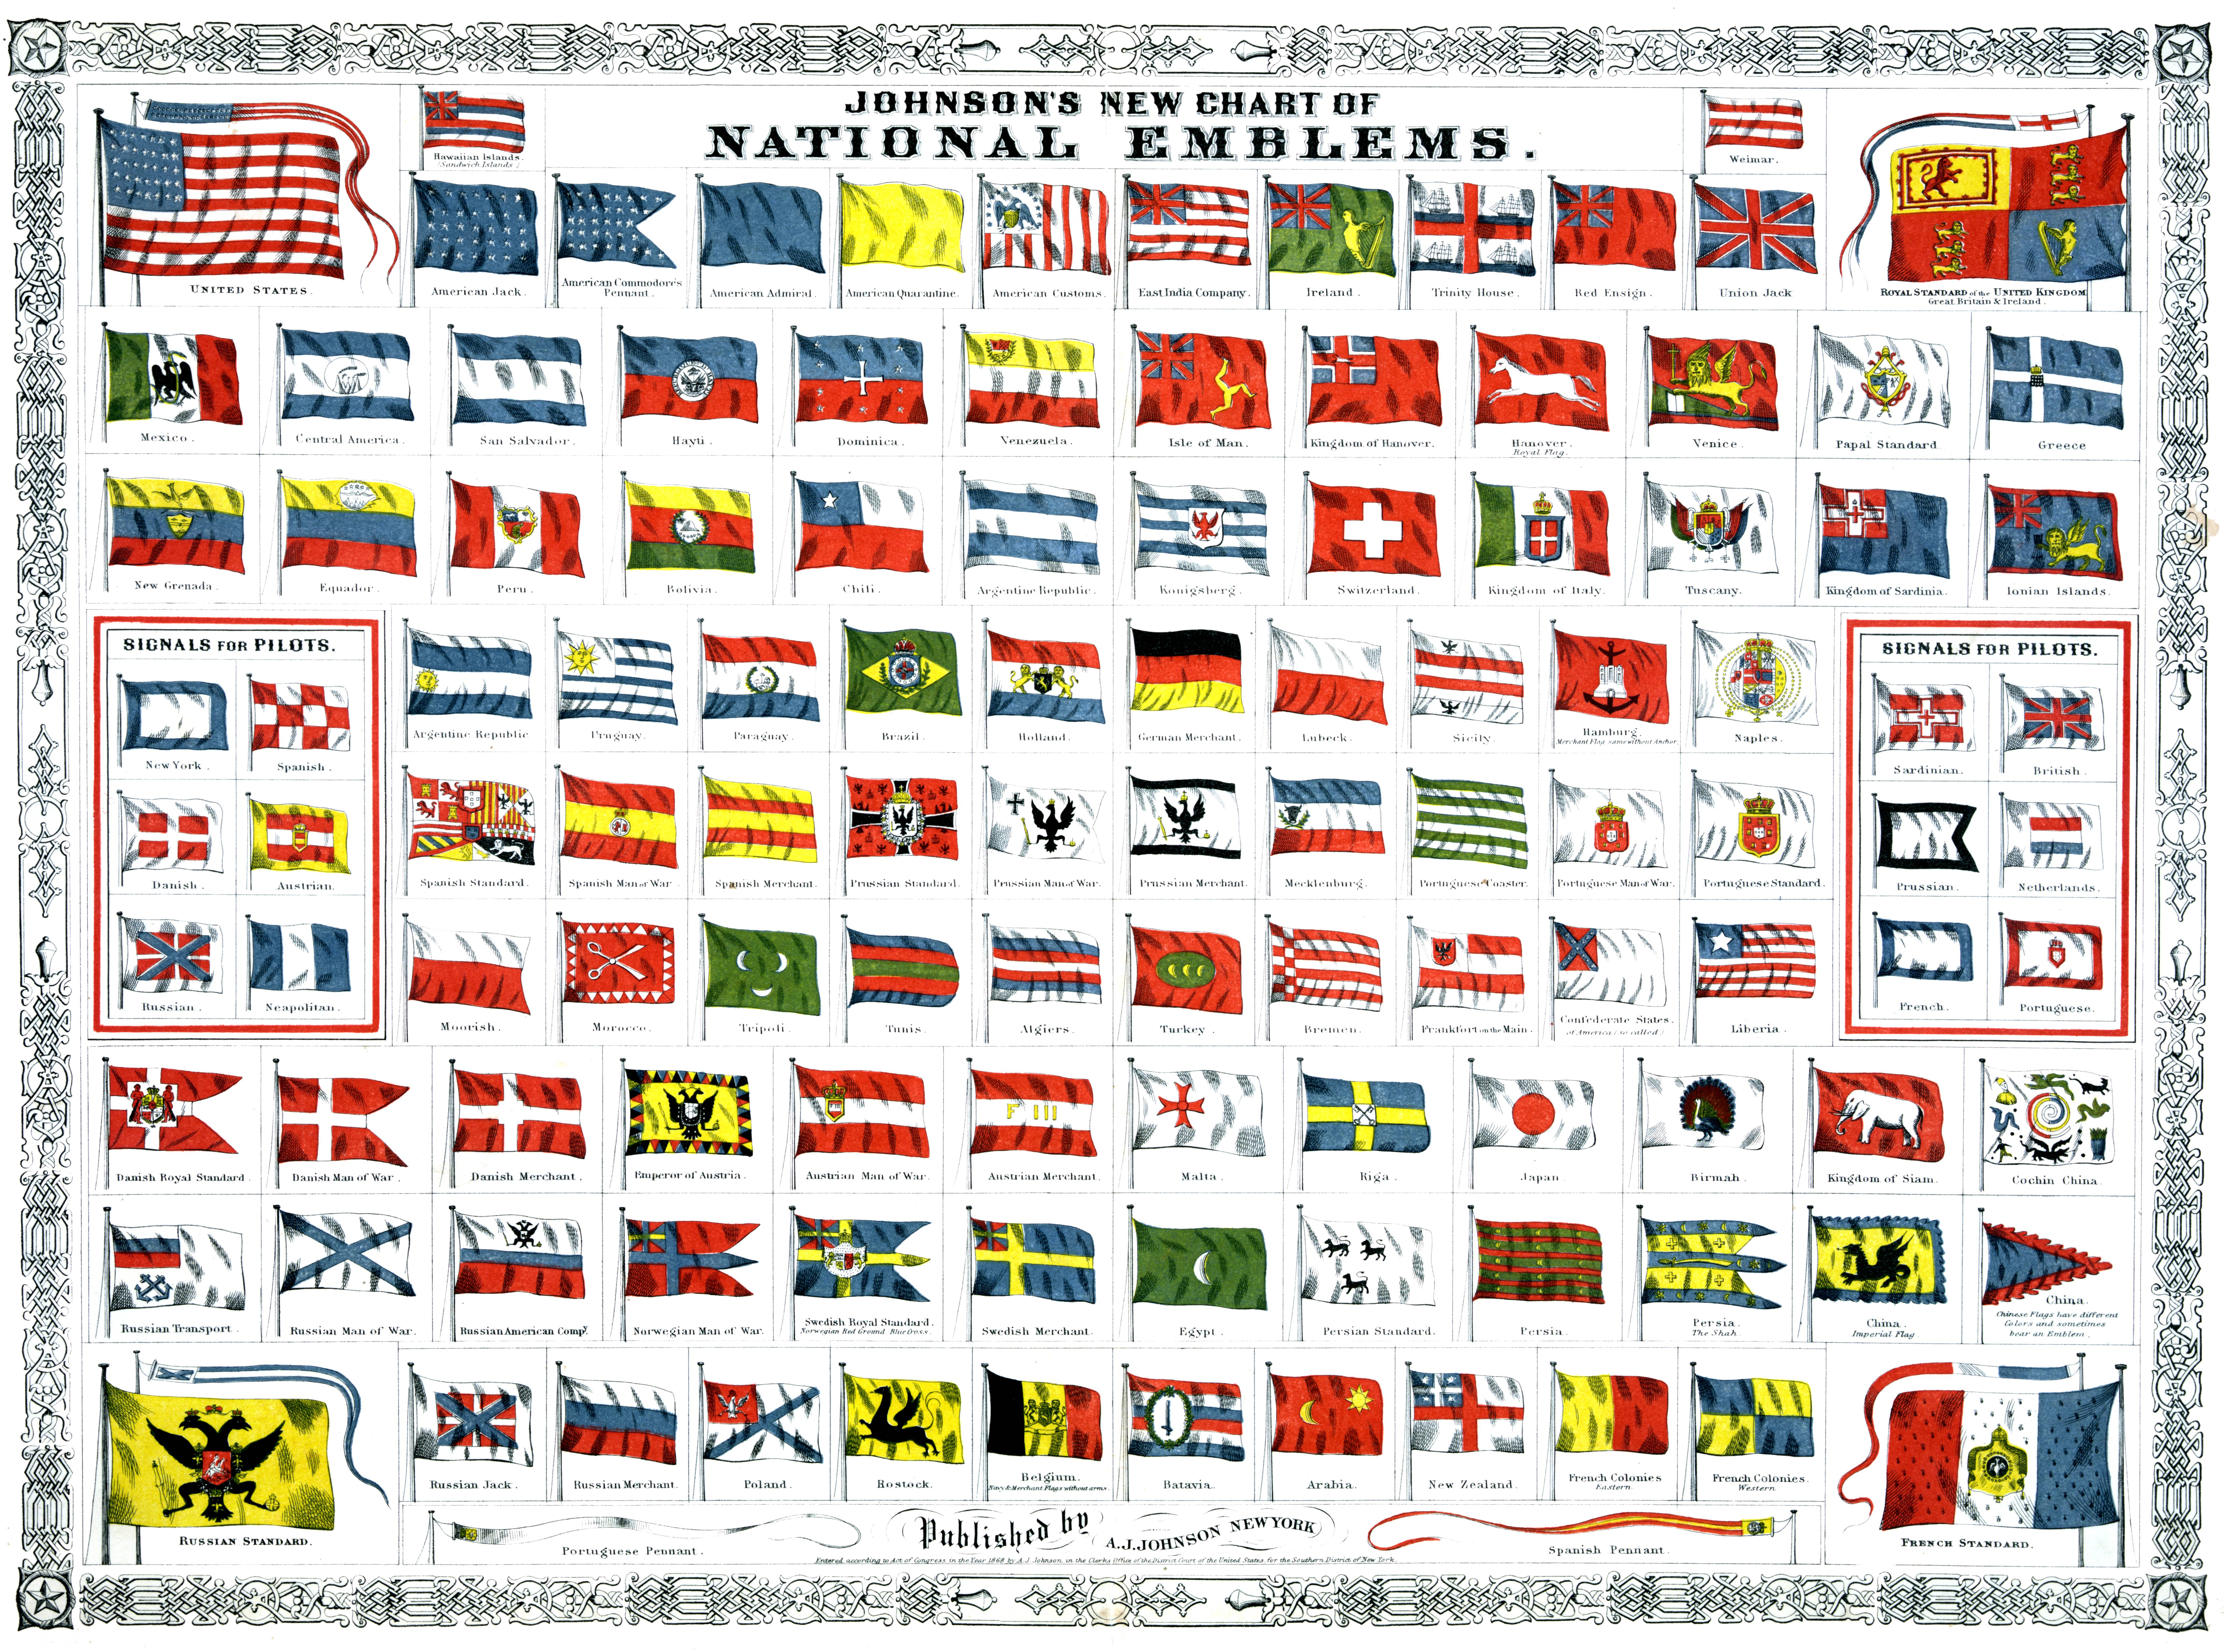 File:Johnson's New Chart of National Emblems 2, 1868.jpg ...